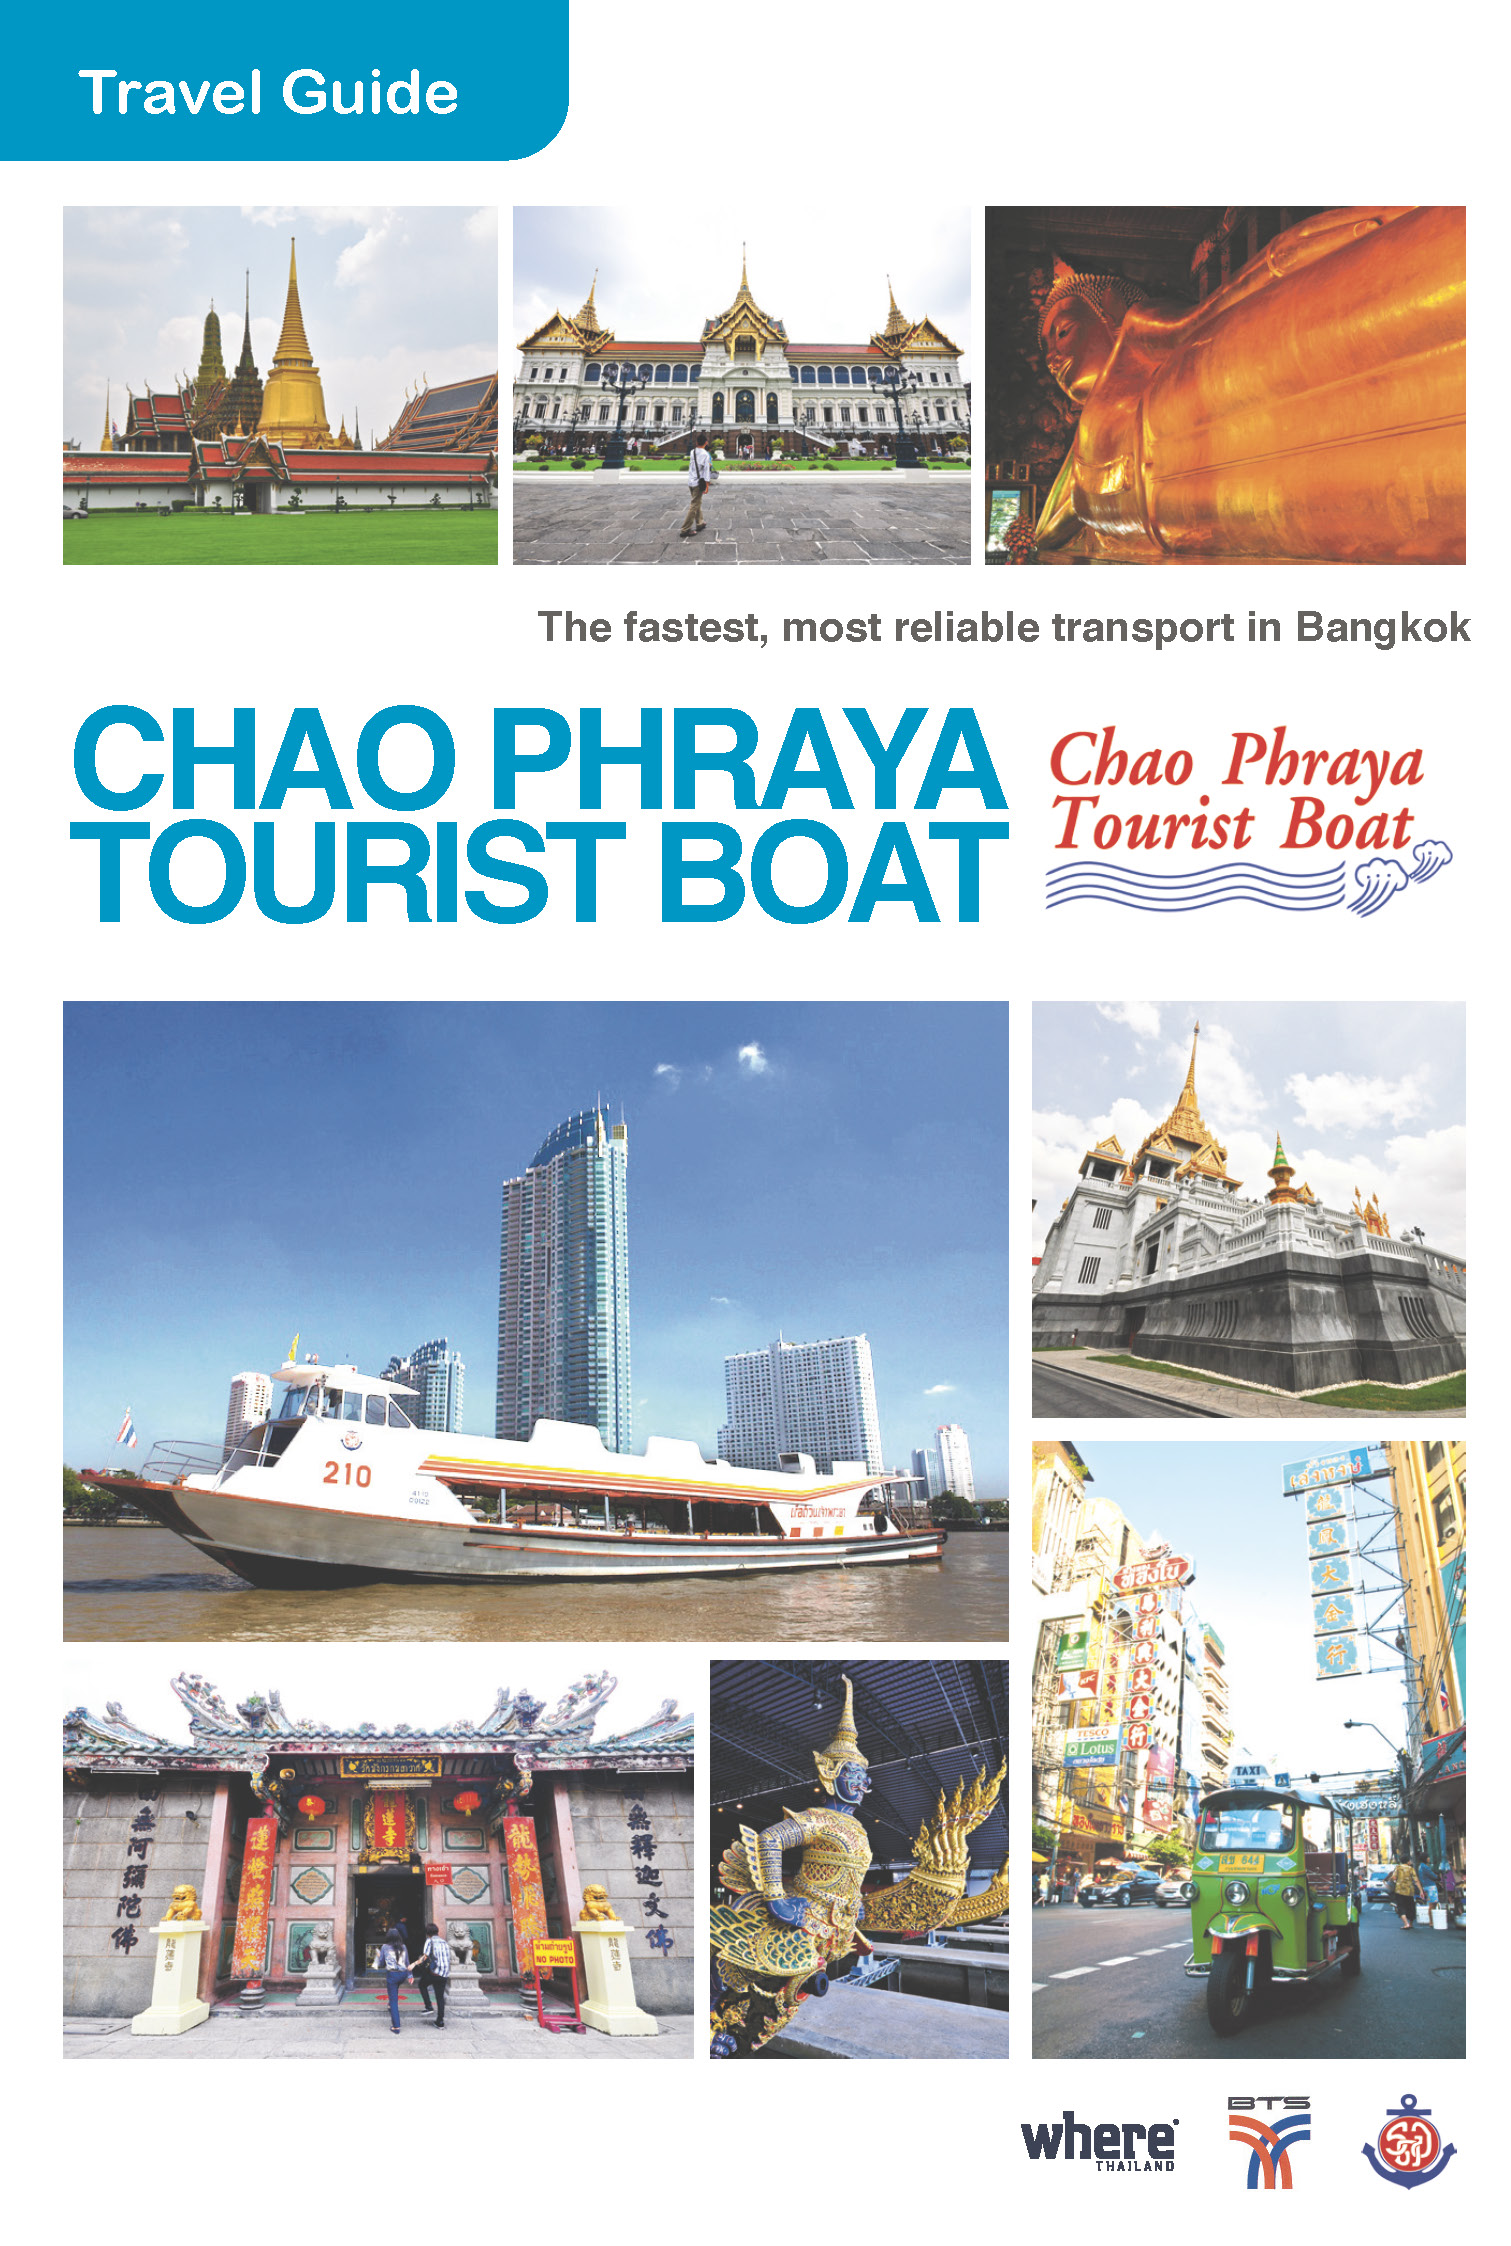 Chao Praya Tourist Boat